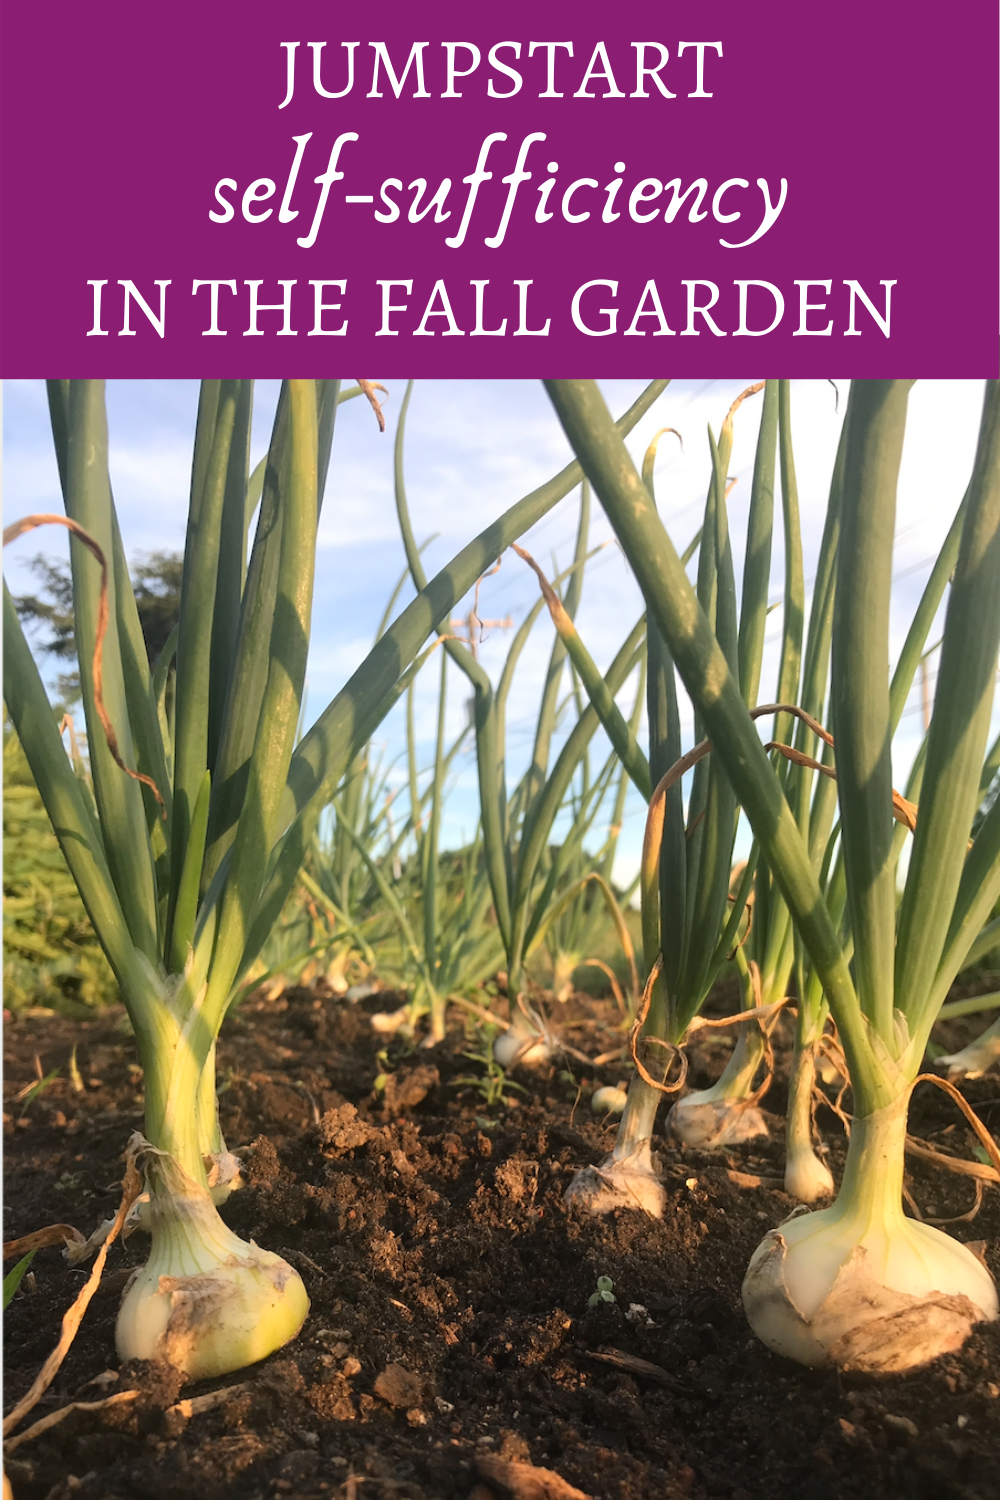 Interested in self-sufficiency? Jumpstart self reliance in the fall garden. Learn why and how easy it is to start the road to food self sufficiency in the fall vegetable garden. Including top 5 crops to get you started. #selfsufficient #selfreliant #fallgarden #homesteading #homesteadgarden #vegetablegarden #fallvegetables #storagecrops